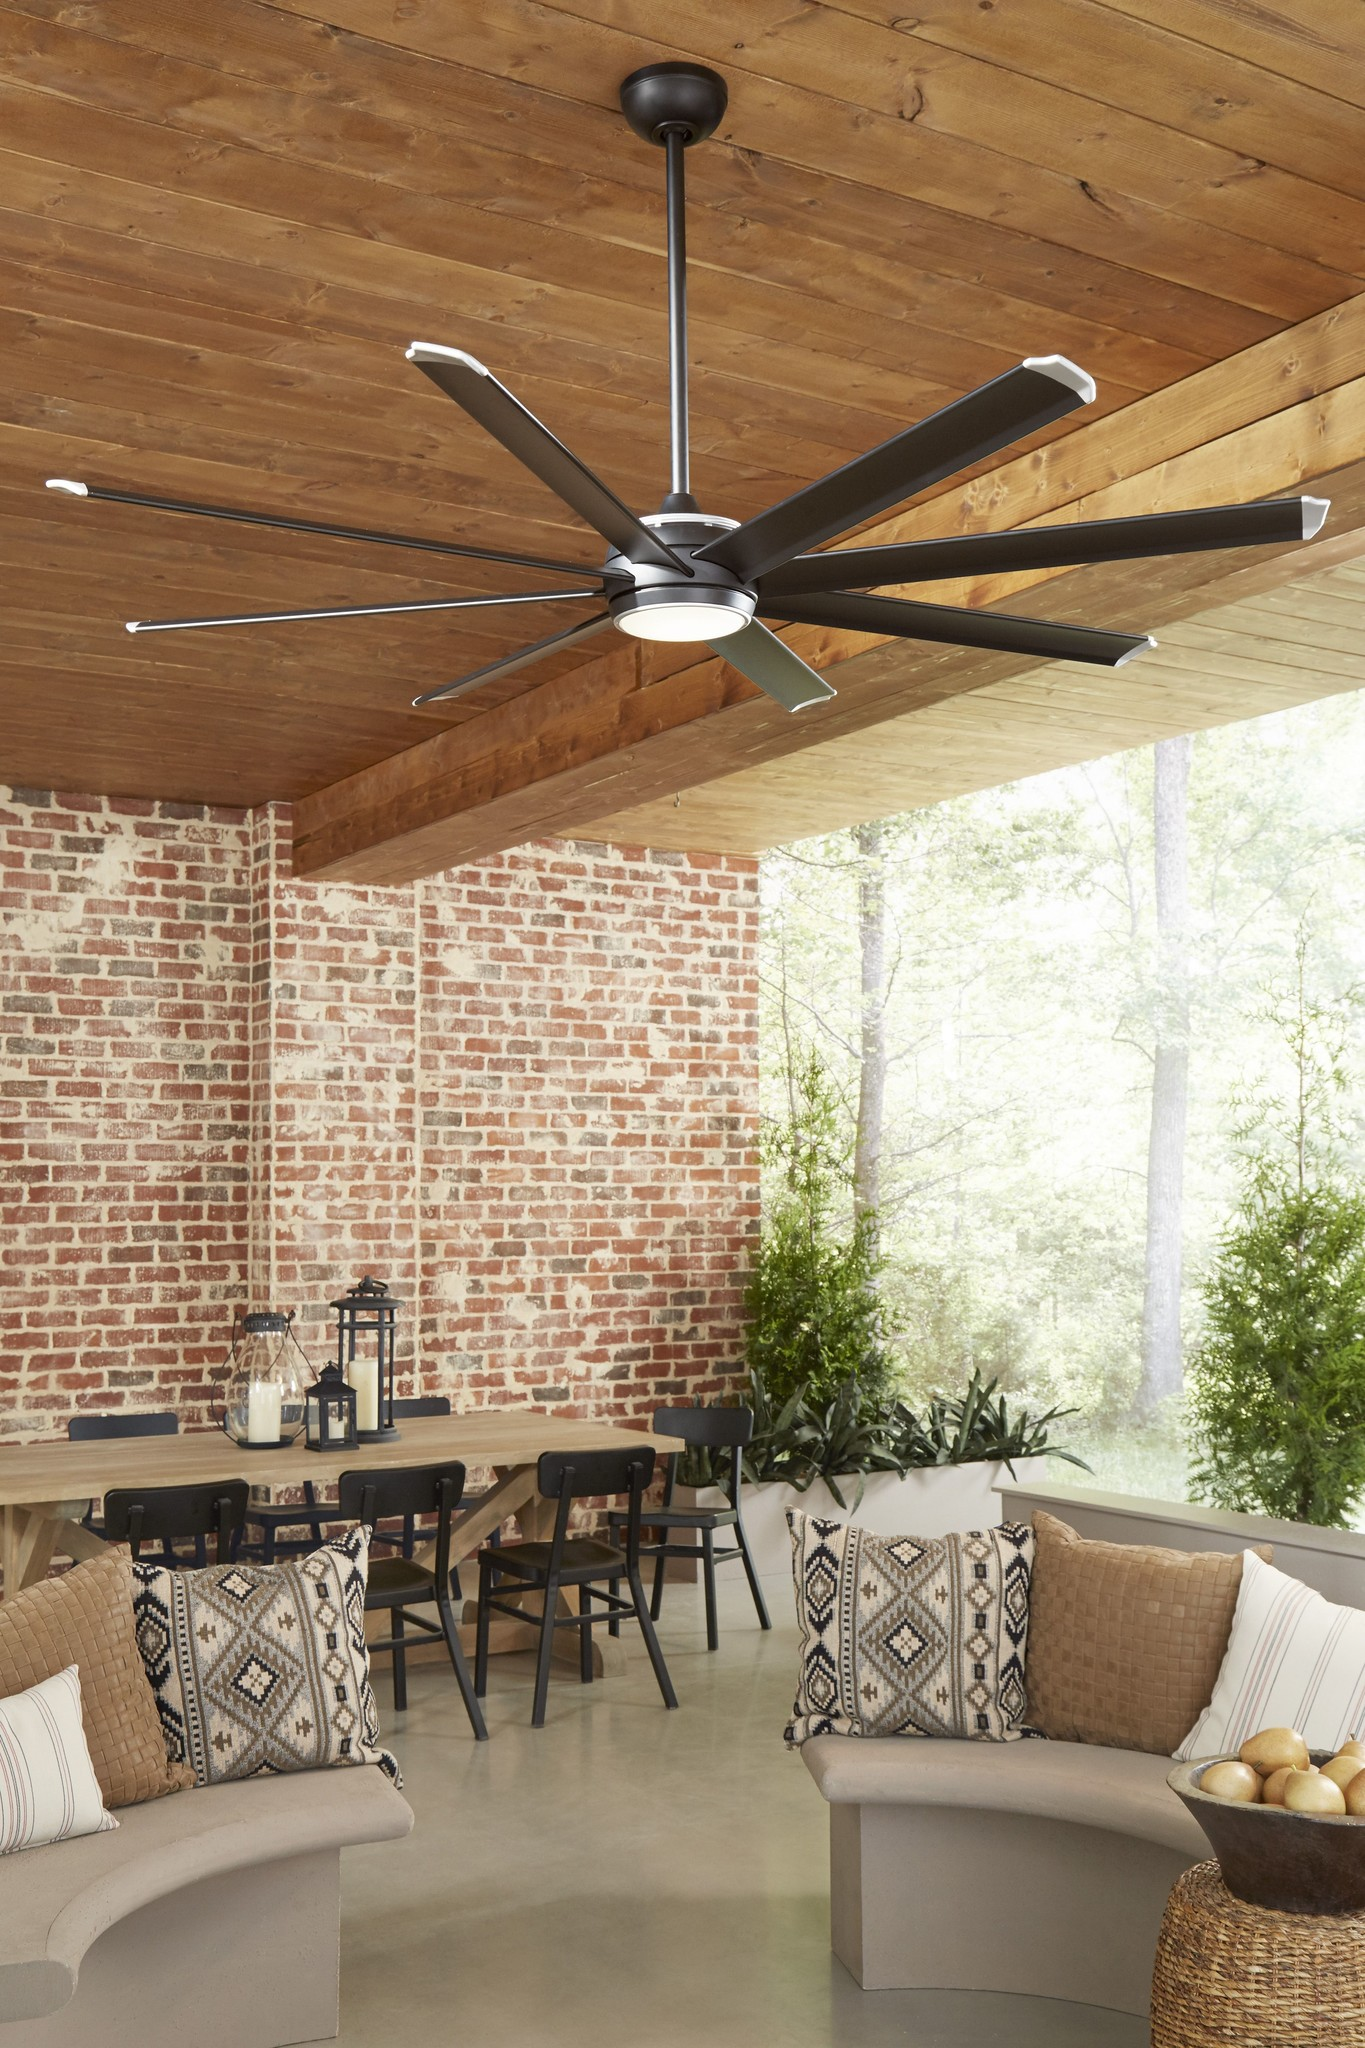 Bonaire Coastal Living Fanimation Stellar Ceiling Fan